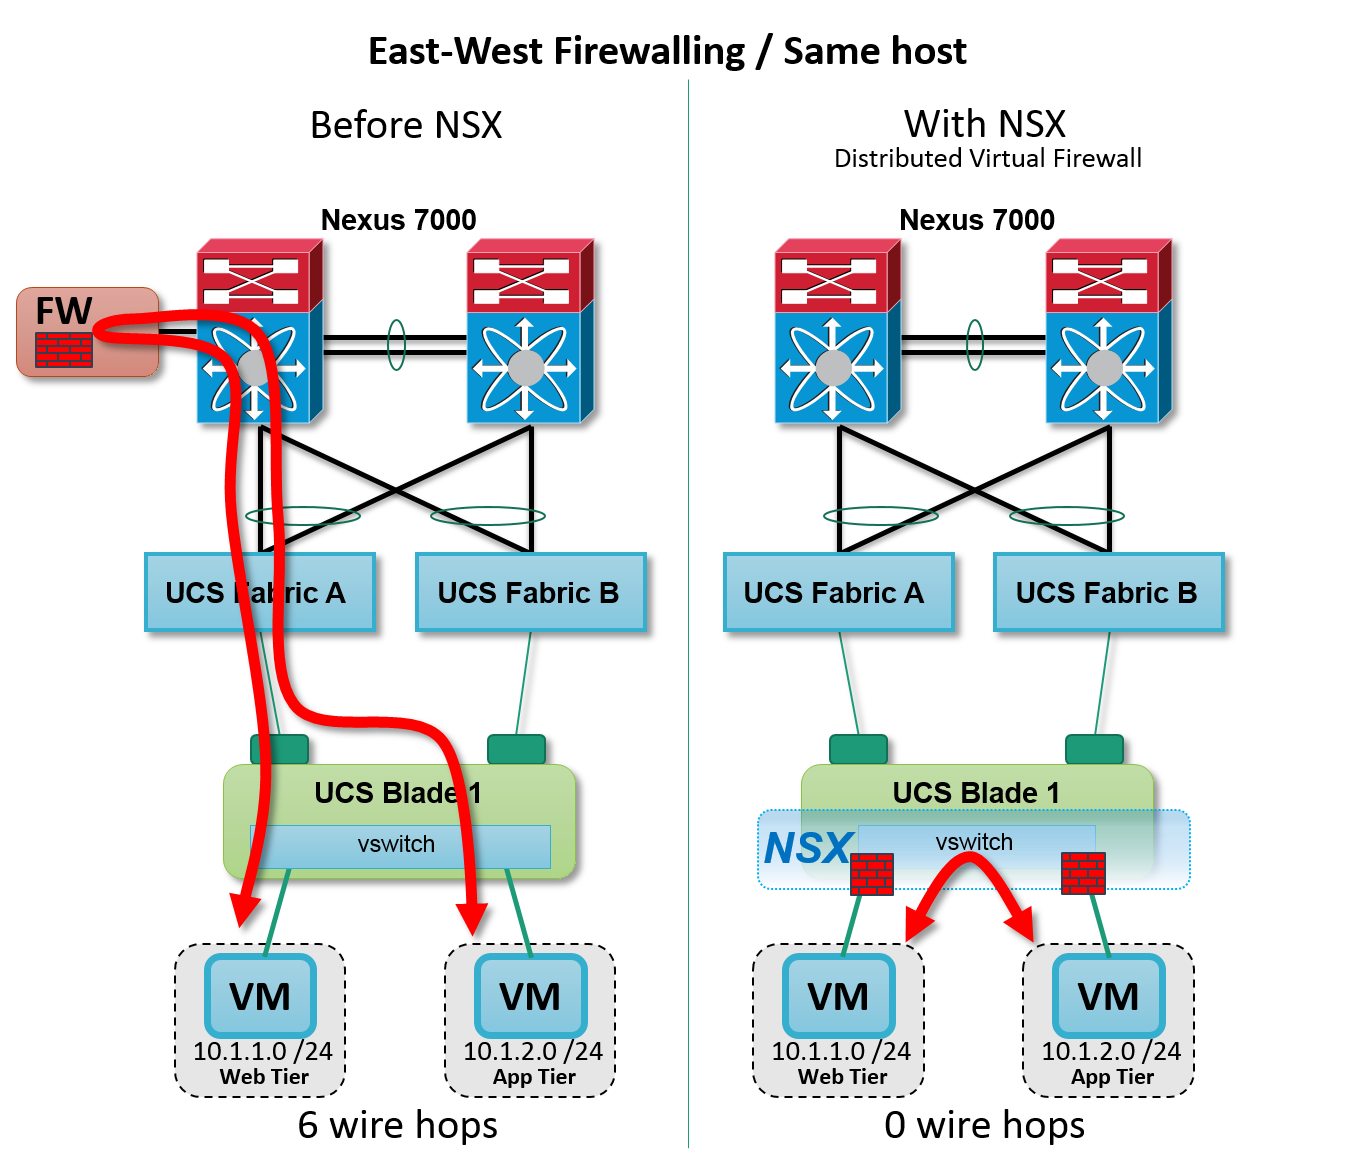 Figure: NSX Distributed Firewall -- intra host